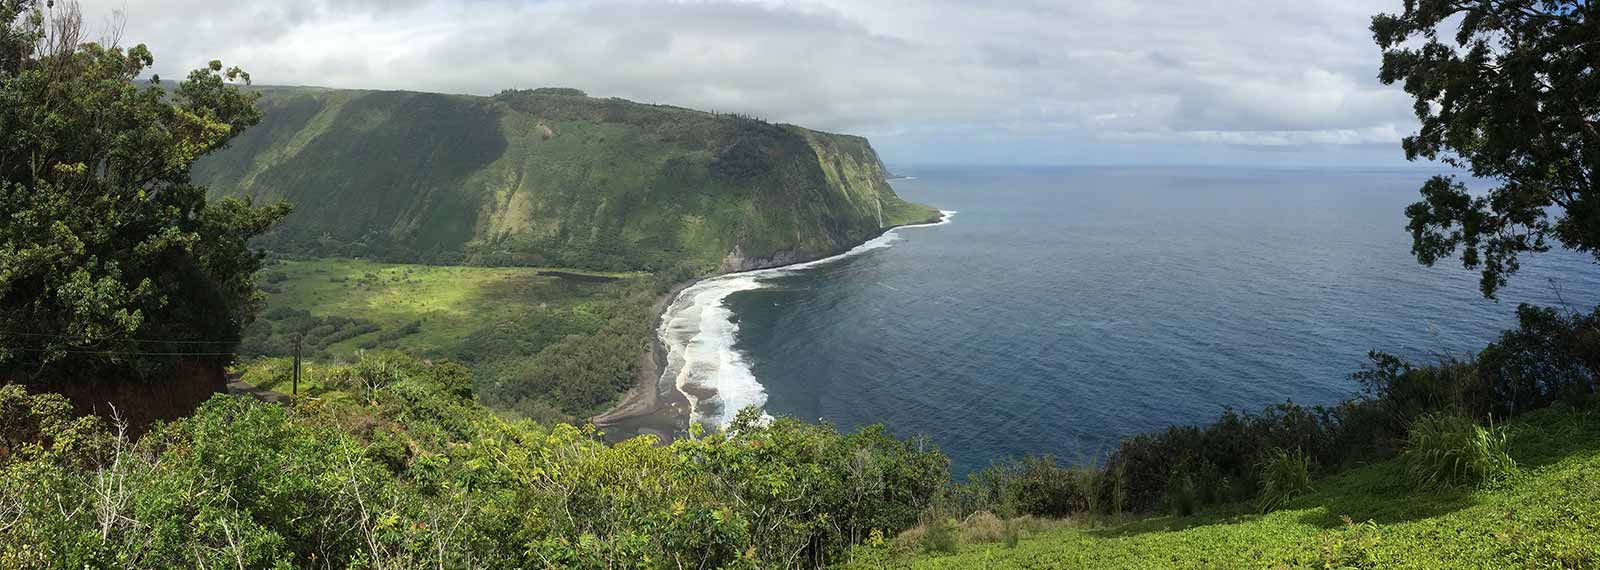 Vacation and stay in Hawaii - Hawaii travel guide